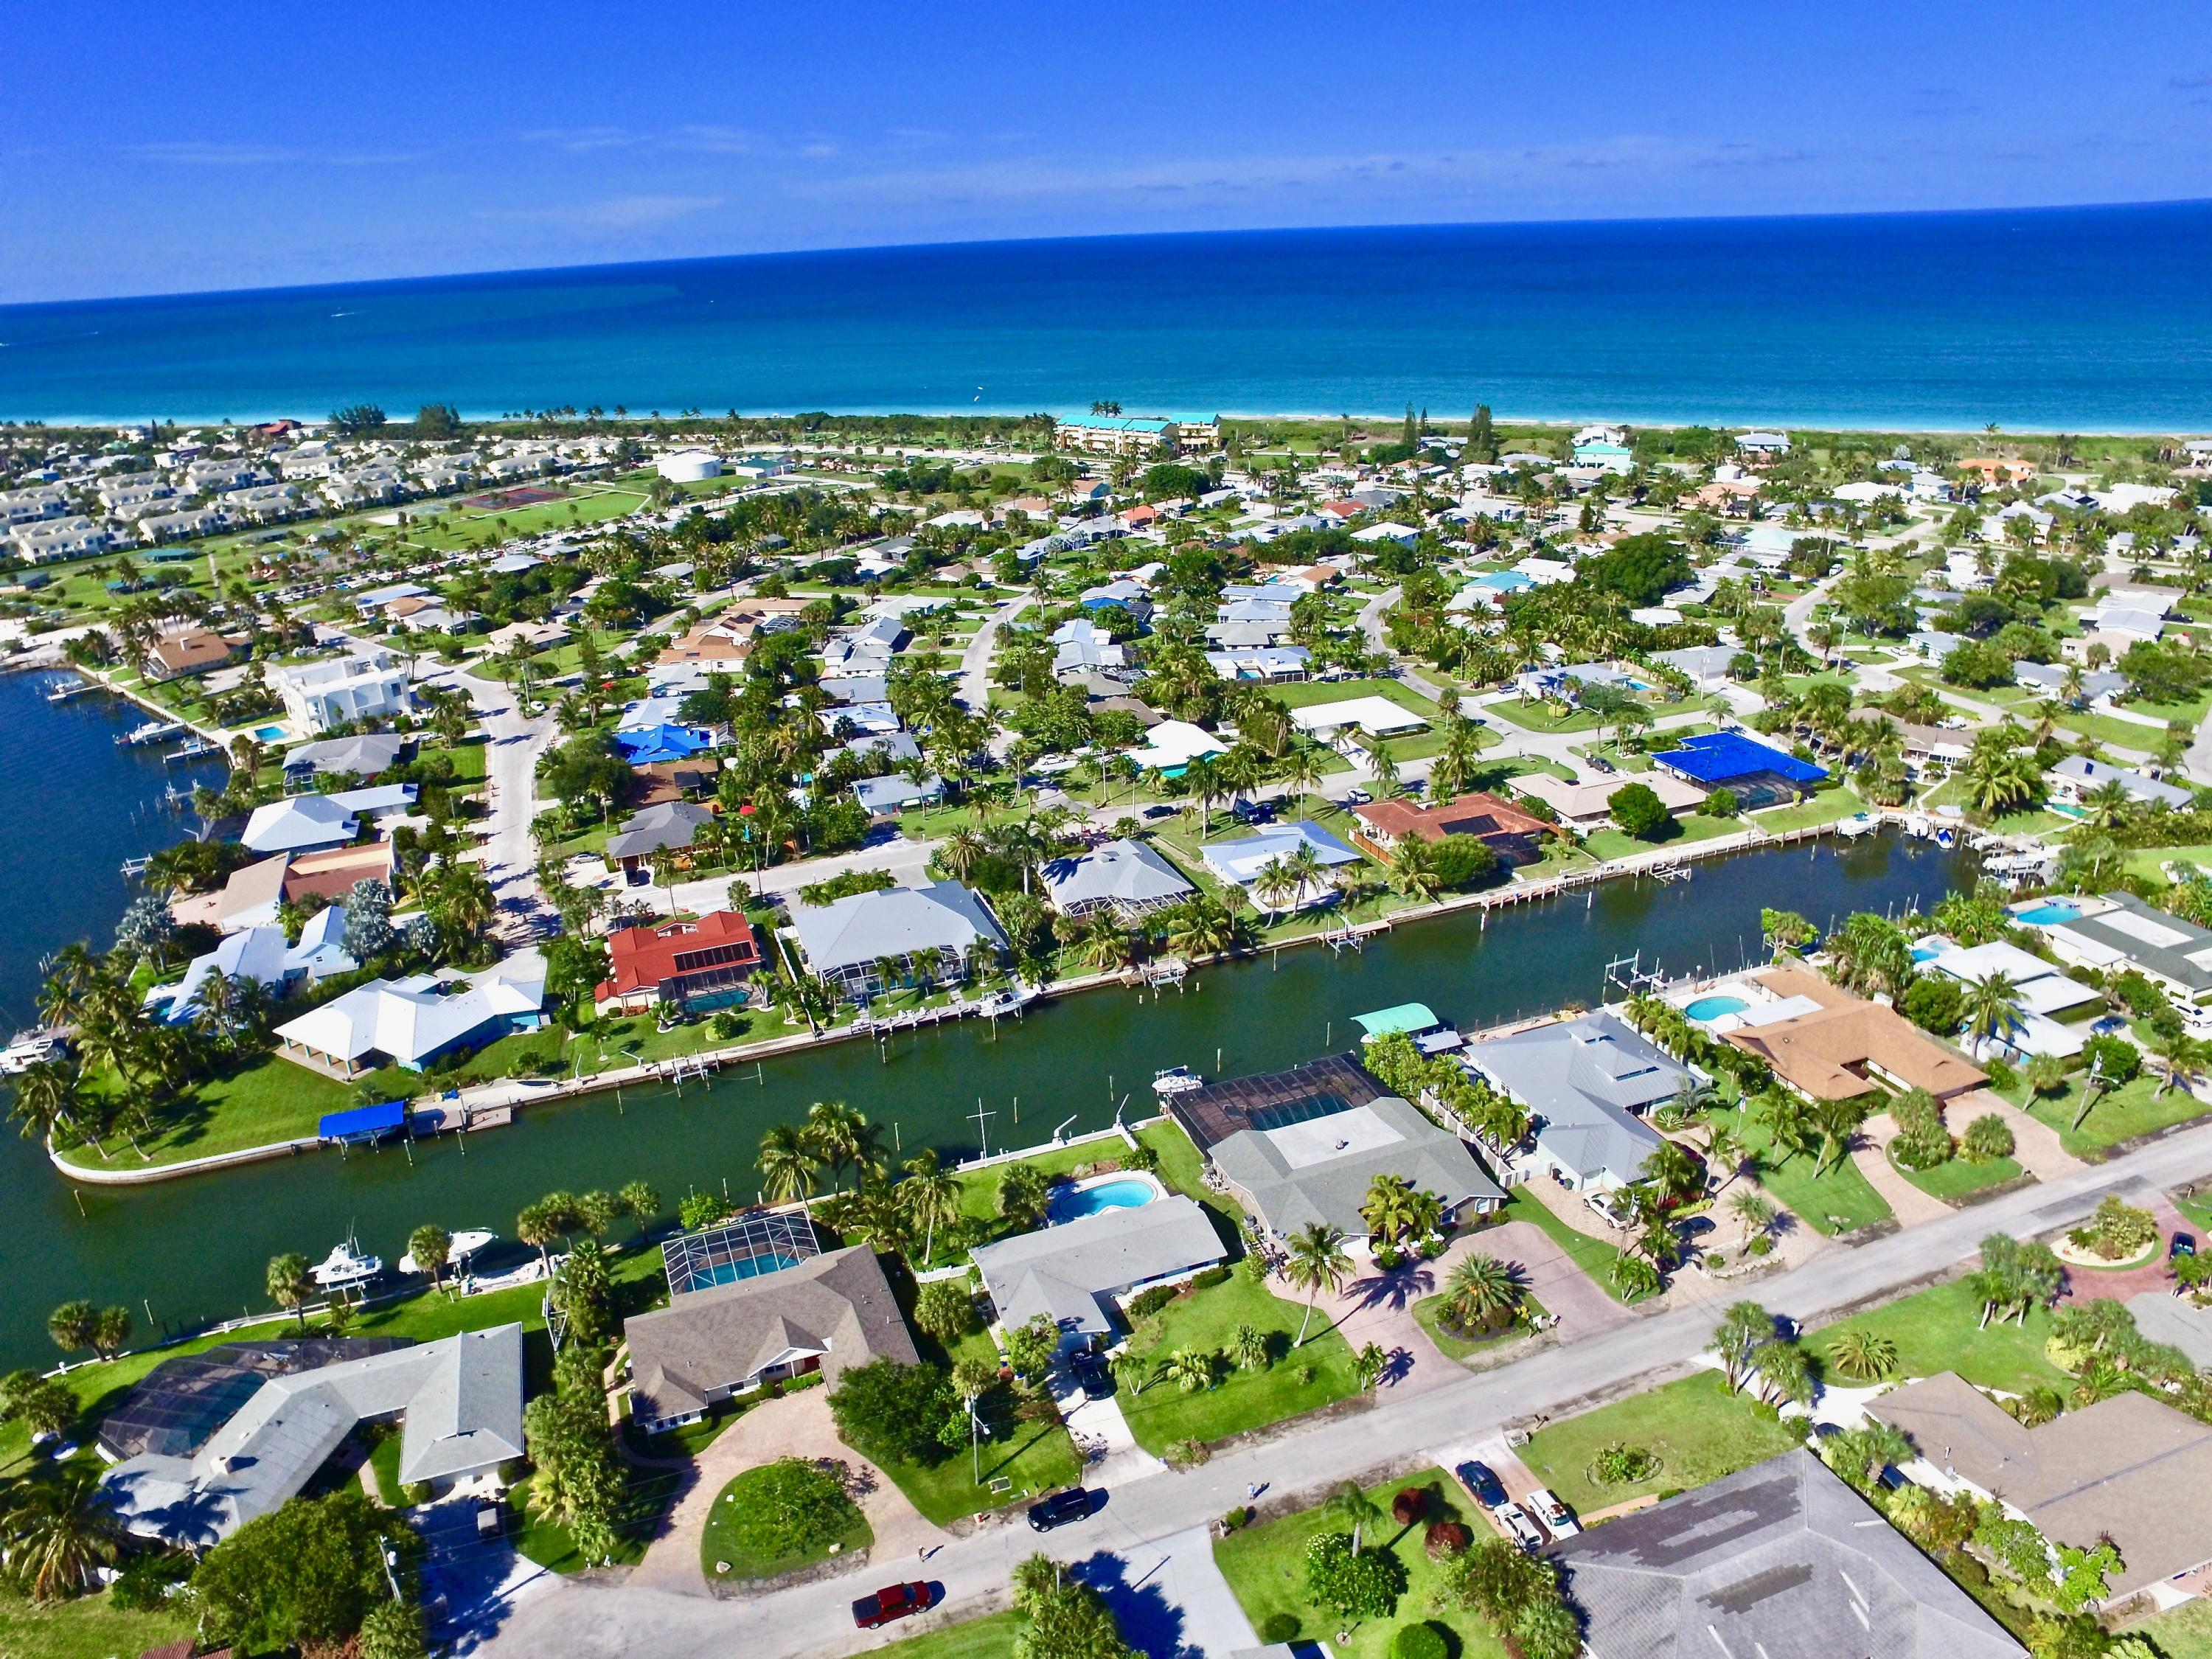 SURFSIDE-UNIT TWO- BLK 11 LOT 18(OR 631-587; 3469-141)